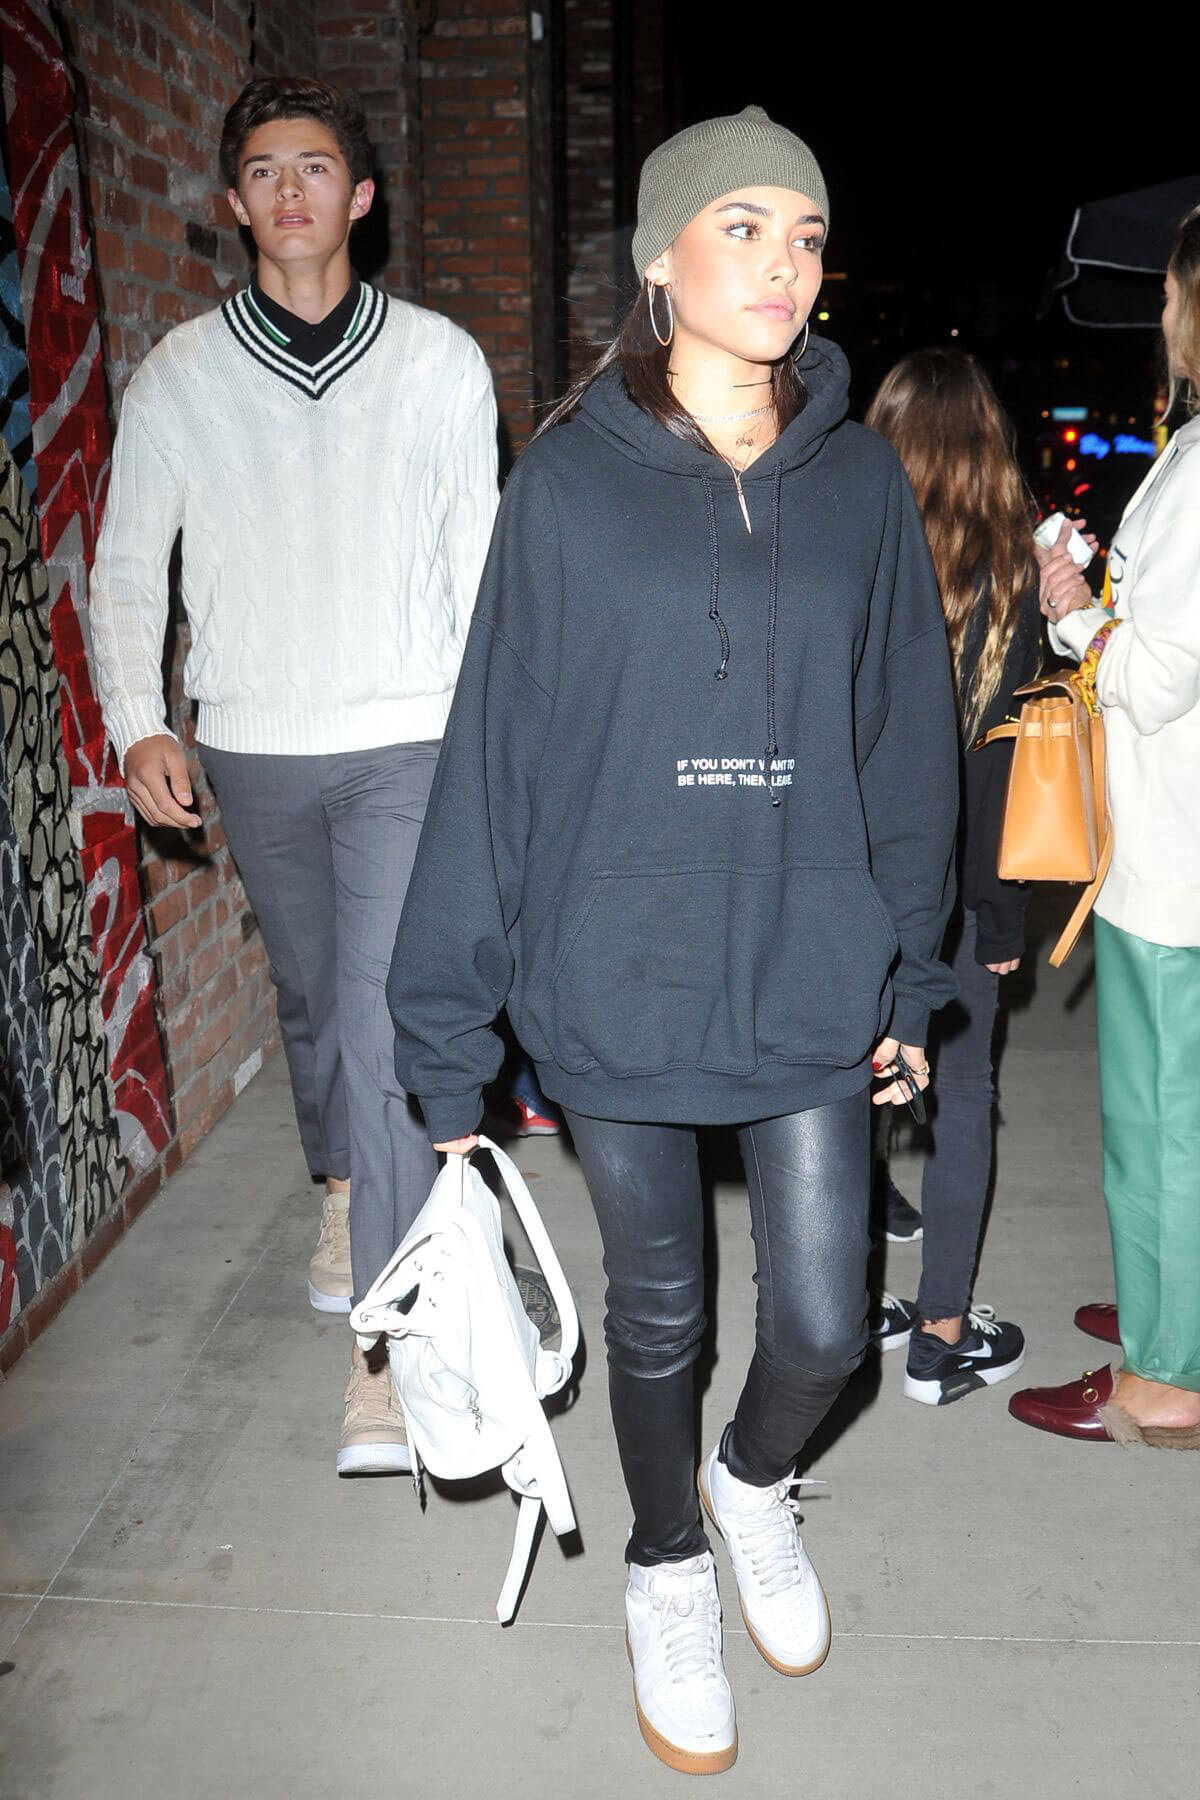 MADISON BEER at Tao Nightclub in Hollywood